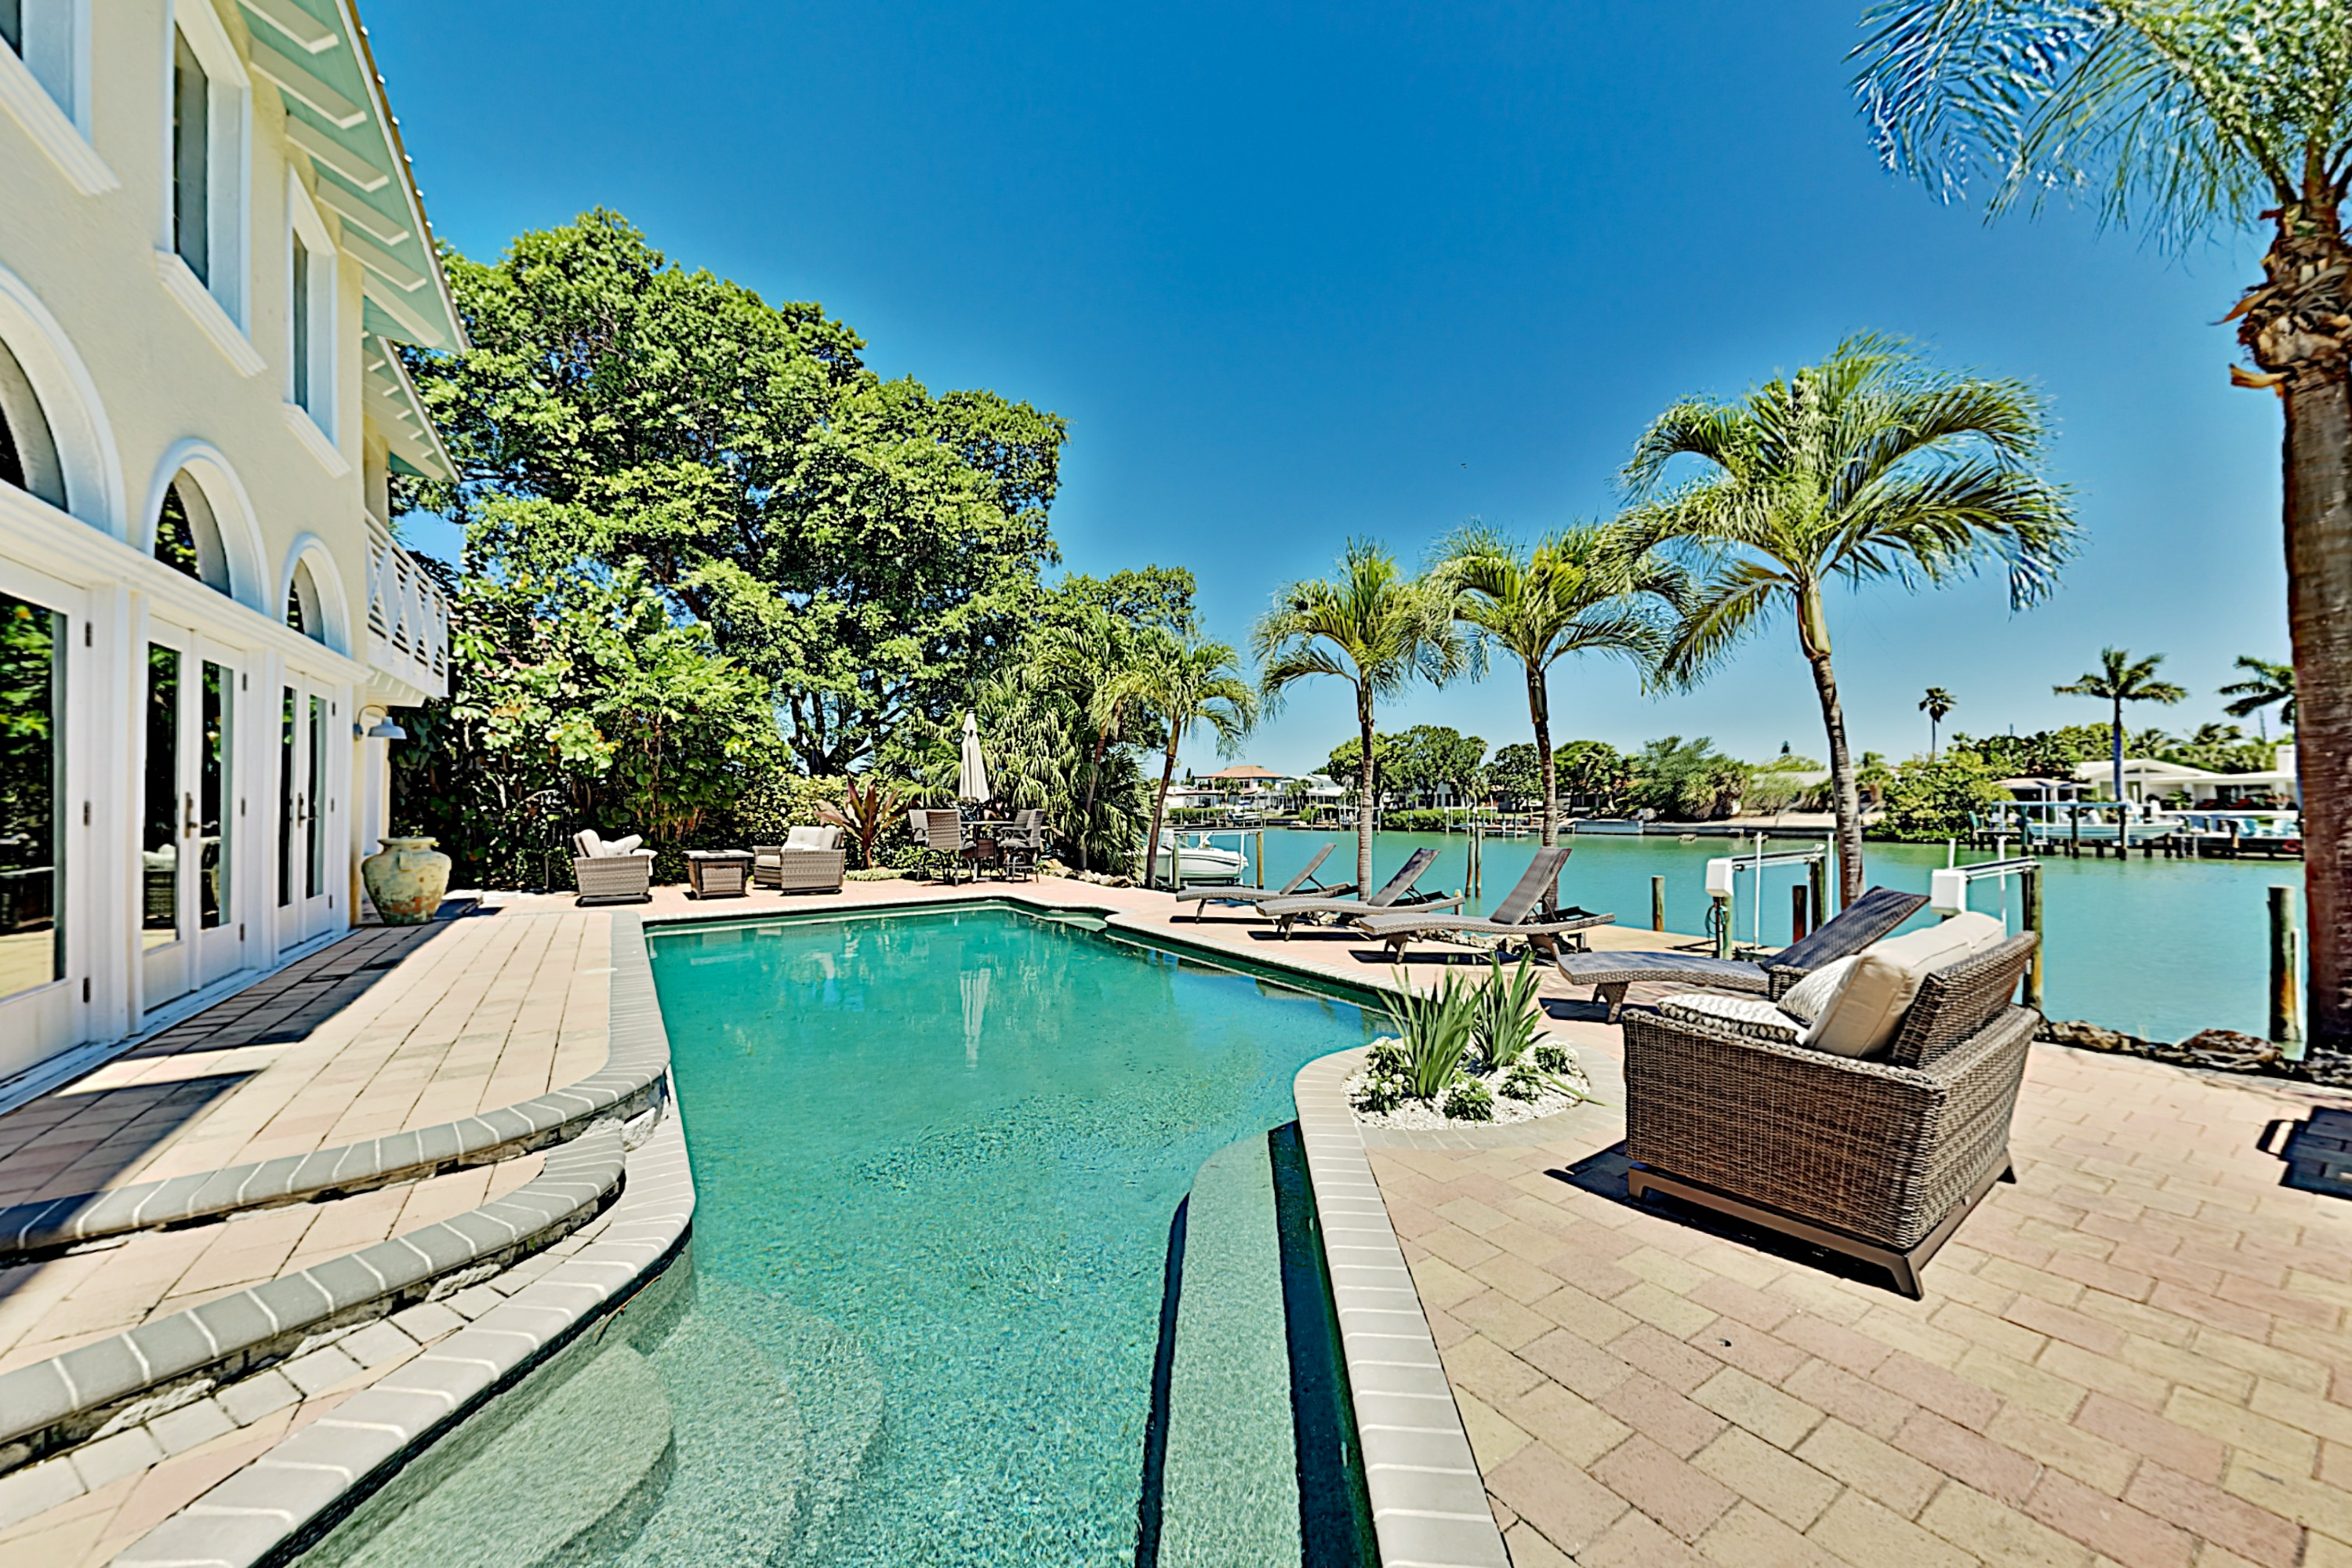 Saint Pete Beach FL Vacation Rental Welcome to the